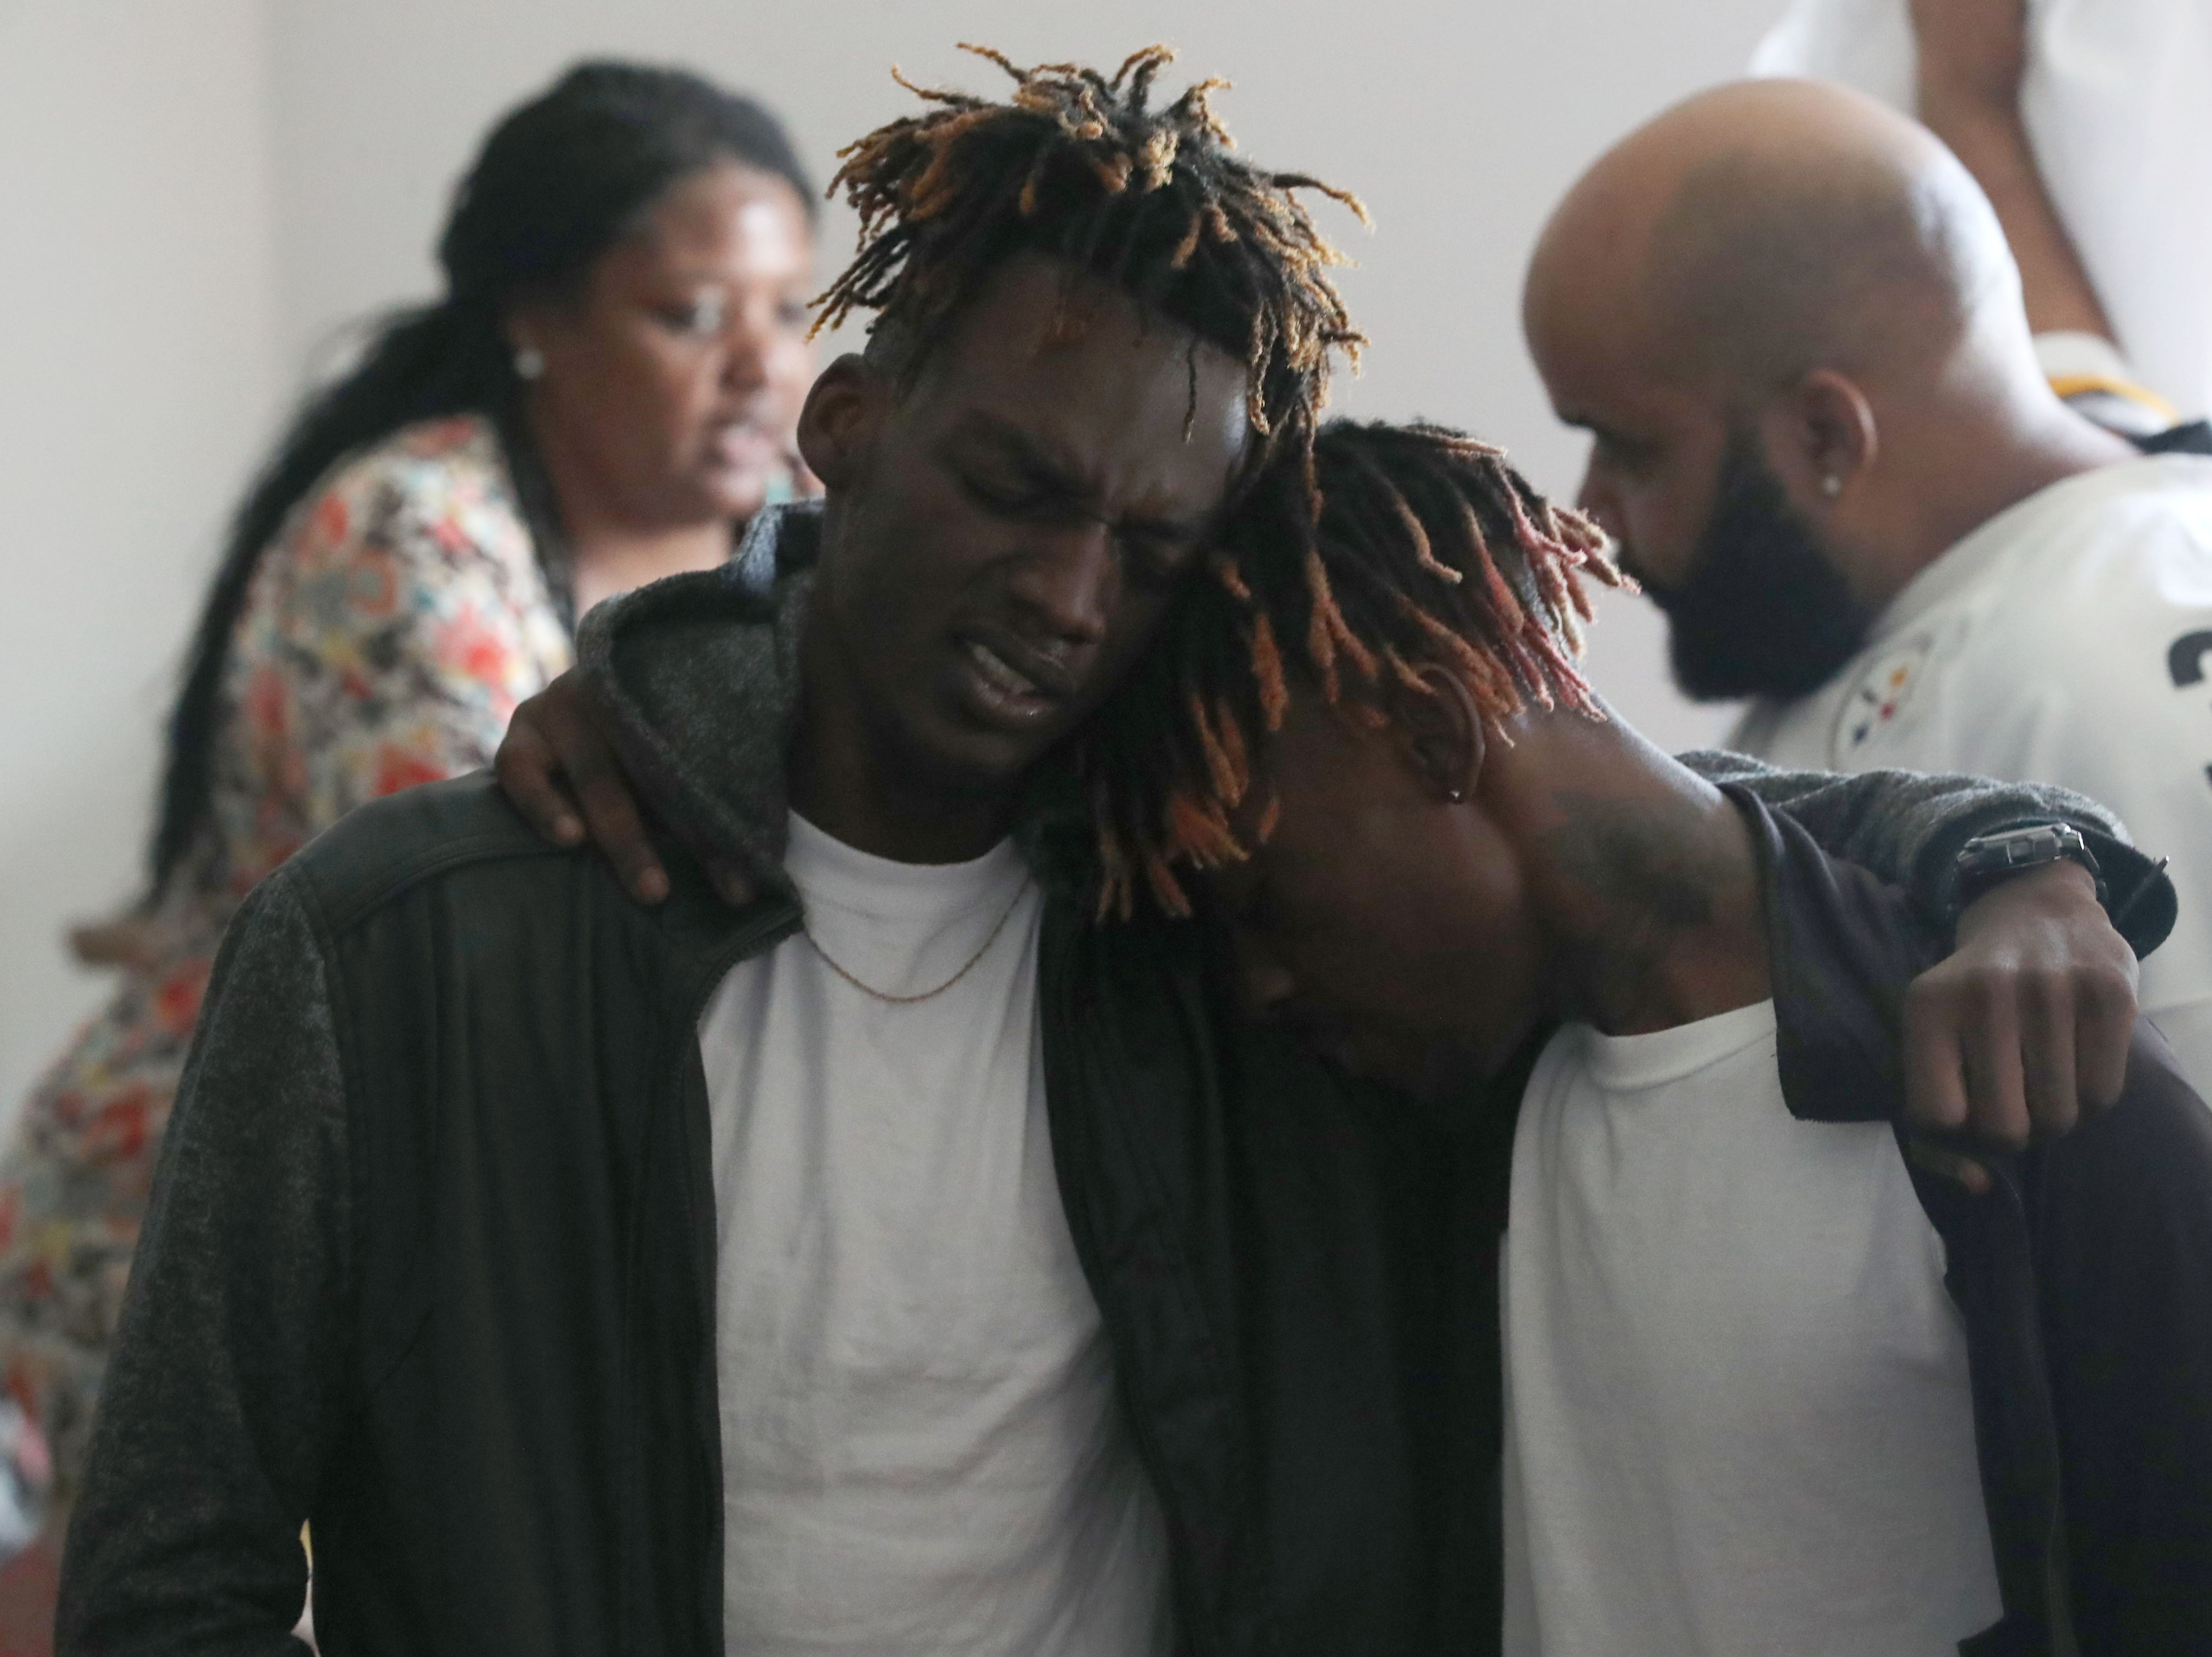 Left, Tyrone Grant, left and Tyran Grant, right, sons of Demashell Bass, a woman who could not receive medical attention and died during the hurricane, sing a hymn whilst trying to hold back tears at the Dream, Vision, and Destiny (DVD) Ministry in Gretna, Fla., on Sunday Oct. 14, 2018, after Hurricane Michael hits the Florida panhandle.